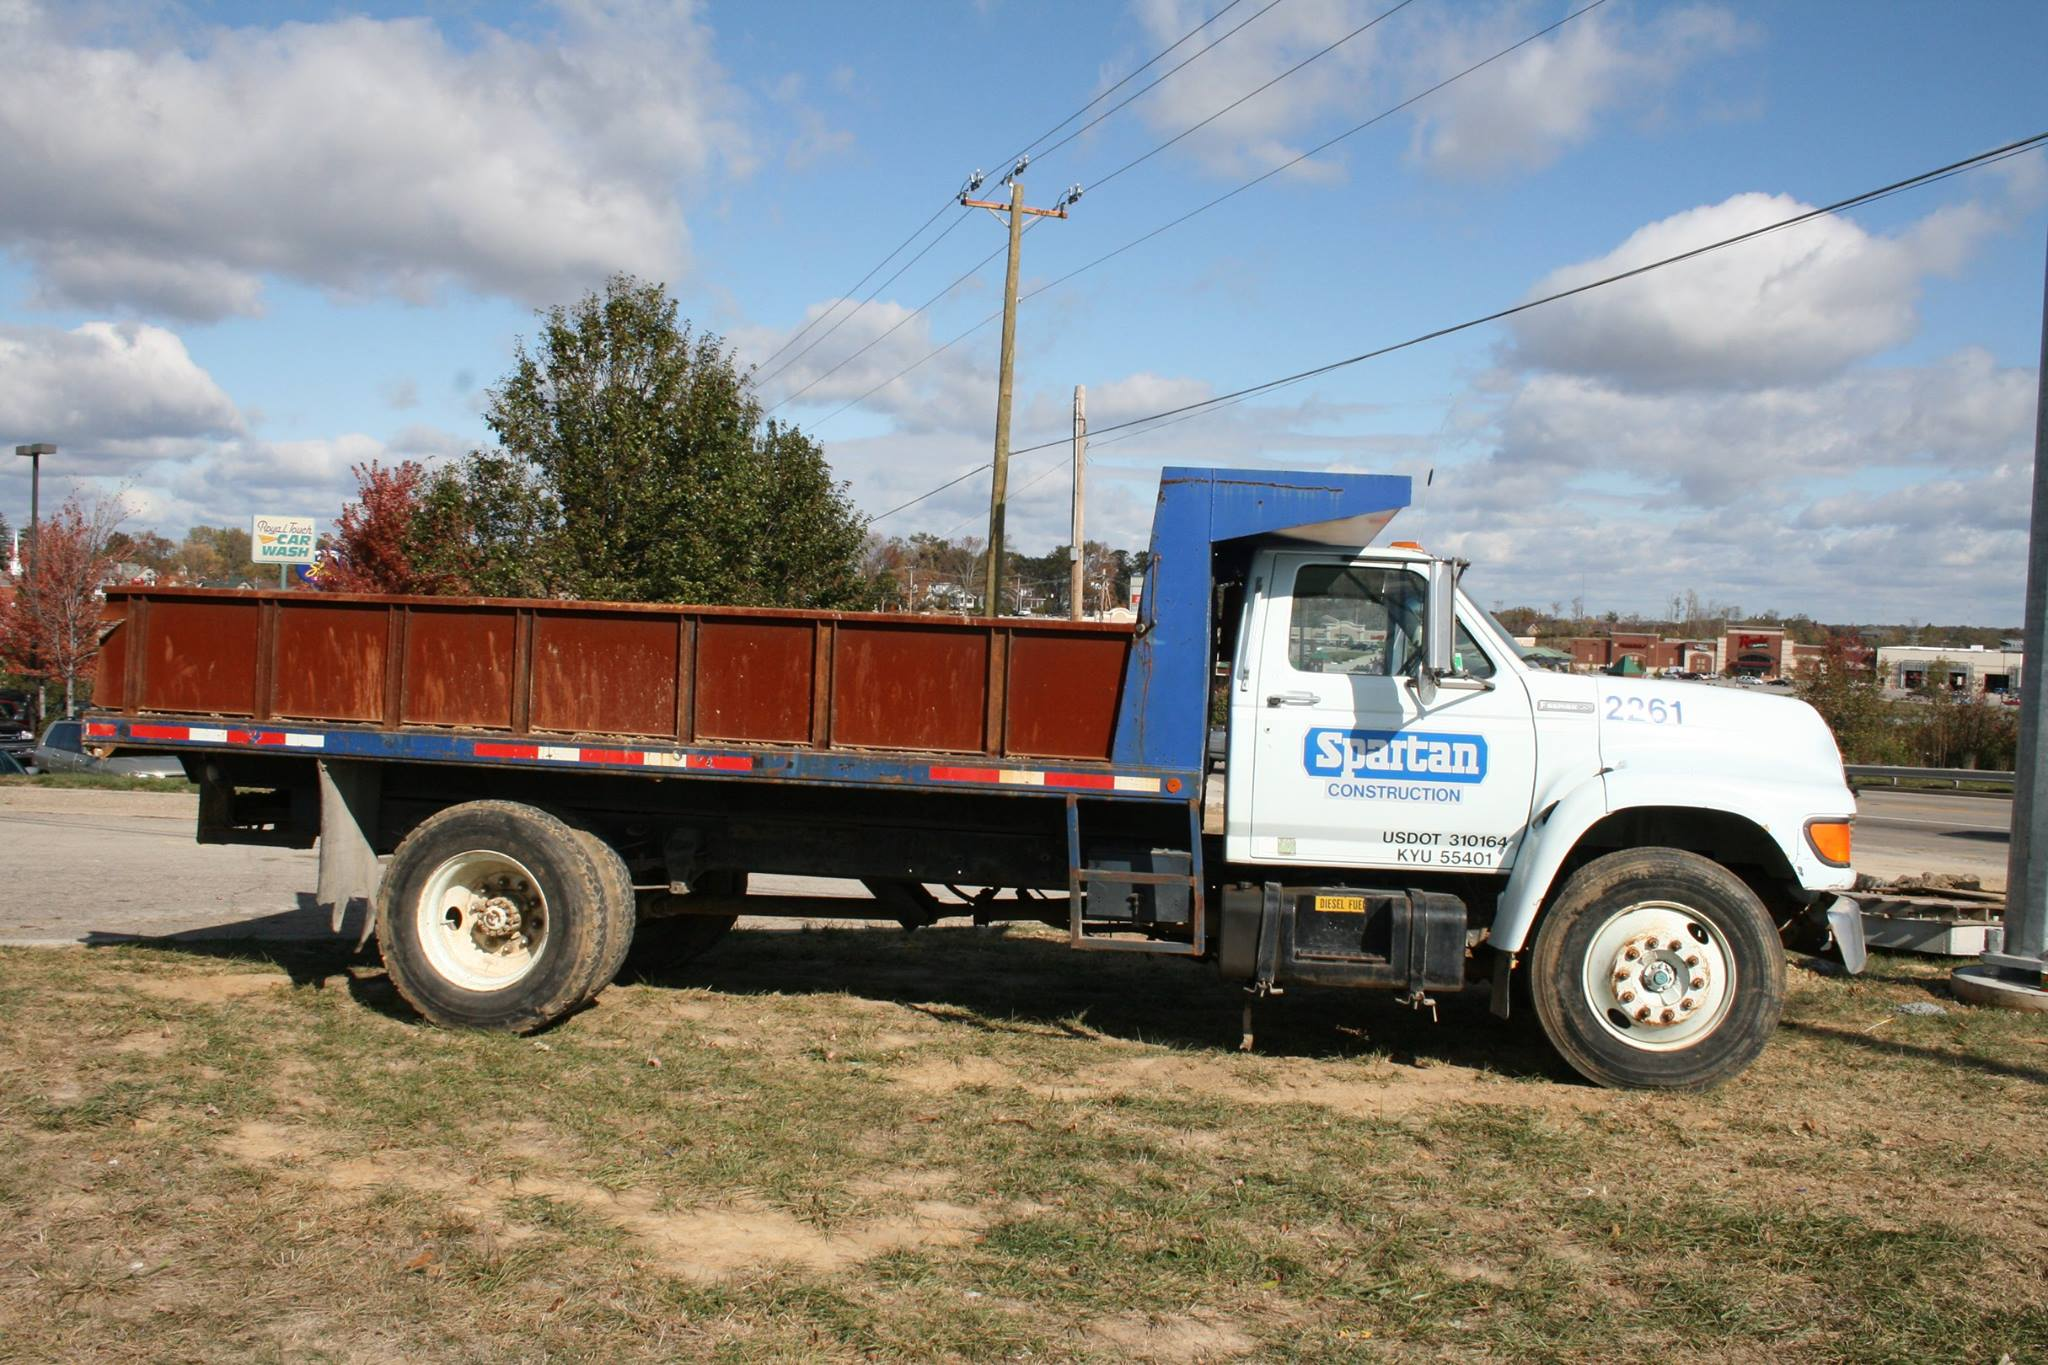 keven moore old dump truck is missing no more thanks to power of